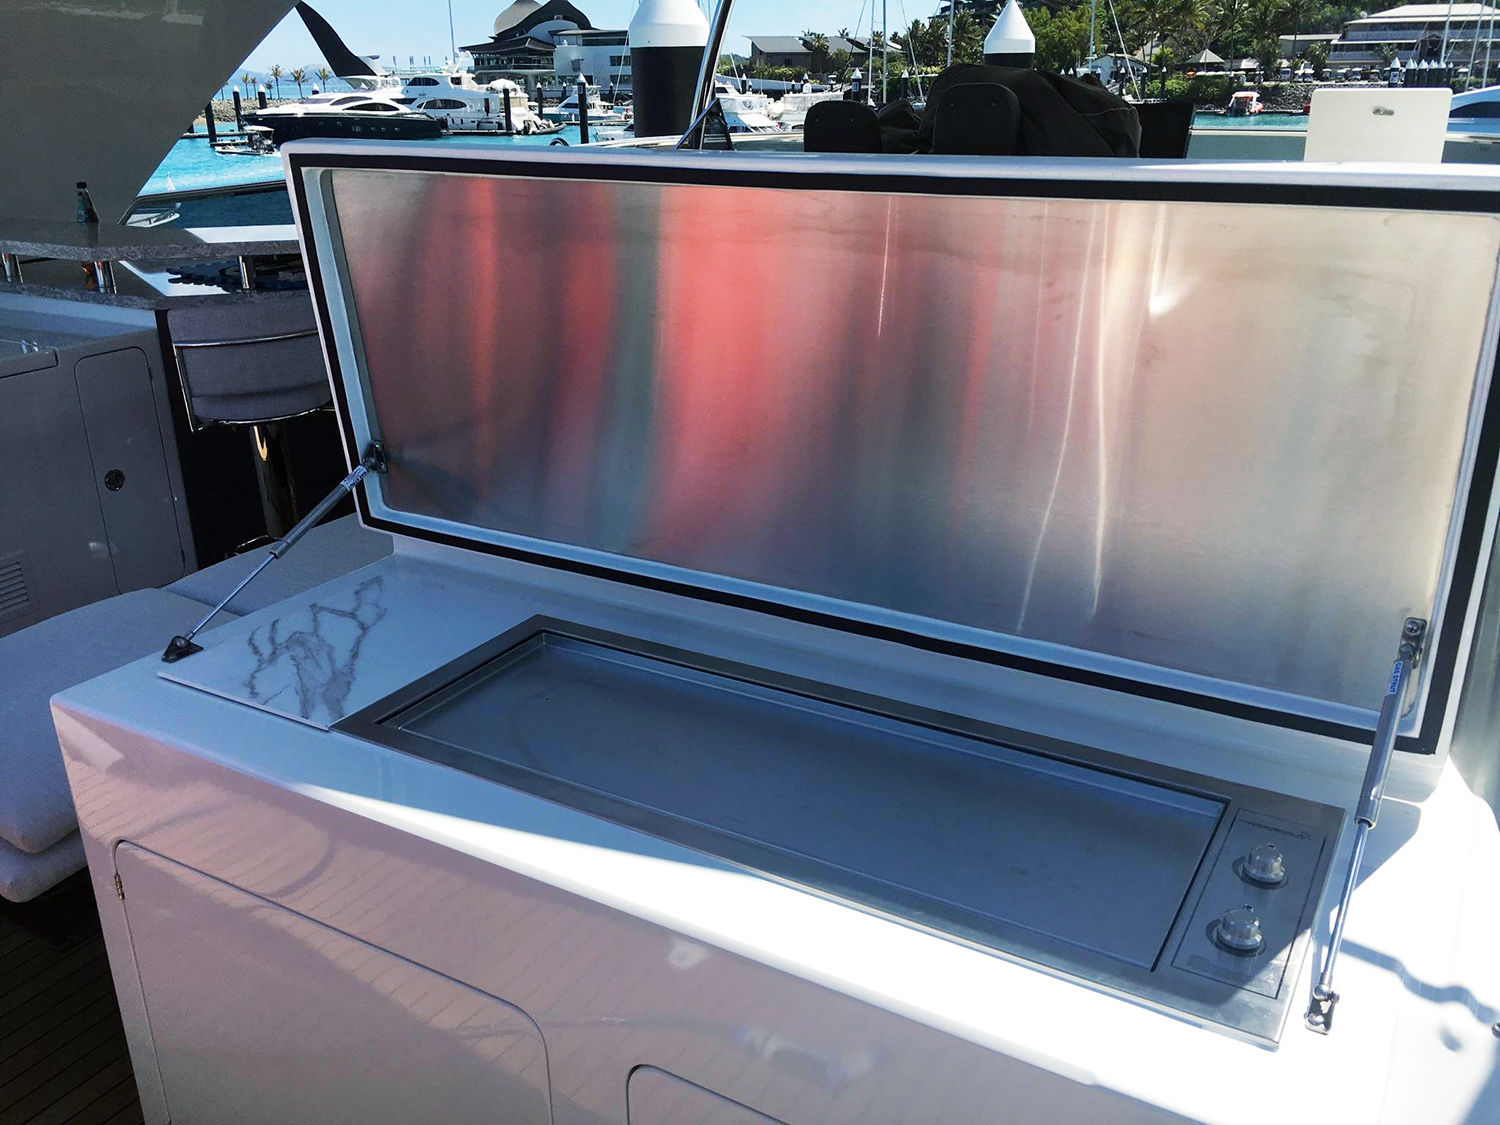 Custom flush mount 110V electric stainless bbq for a boat